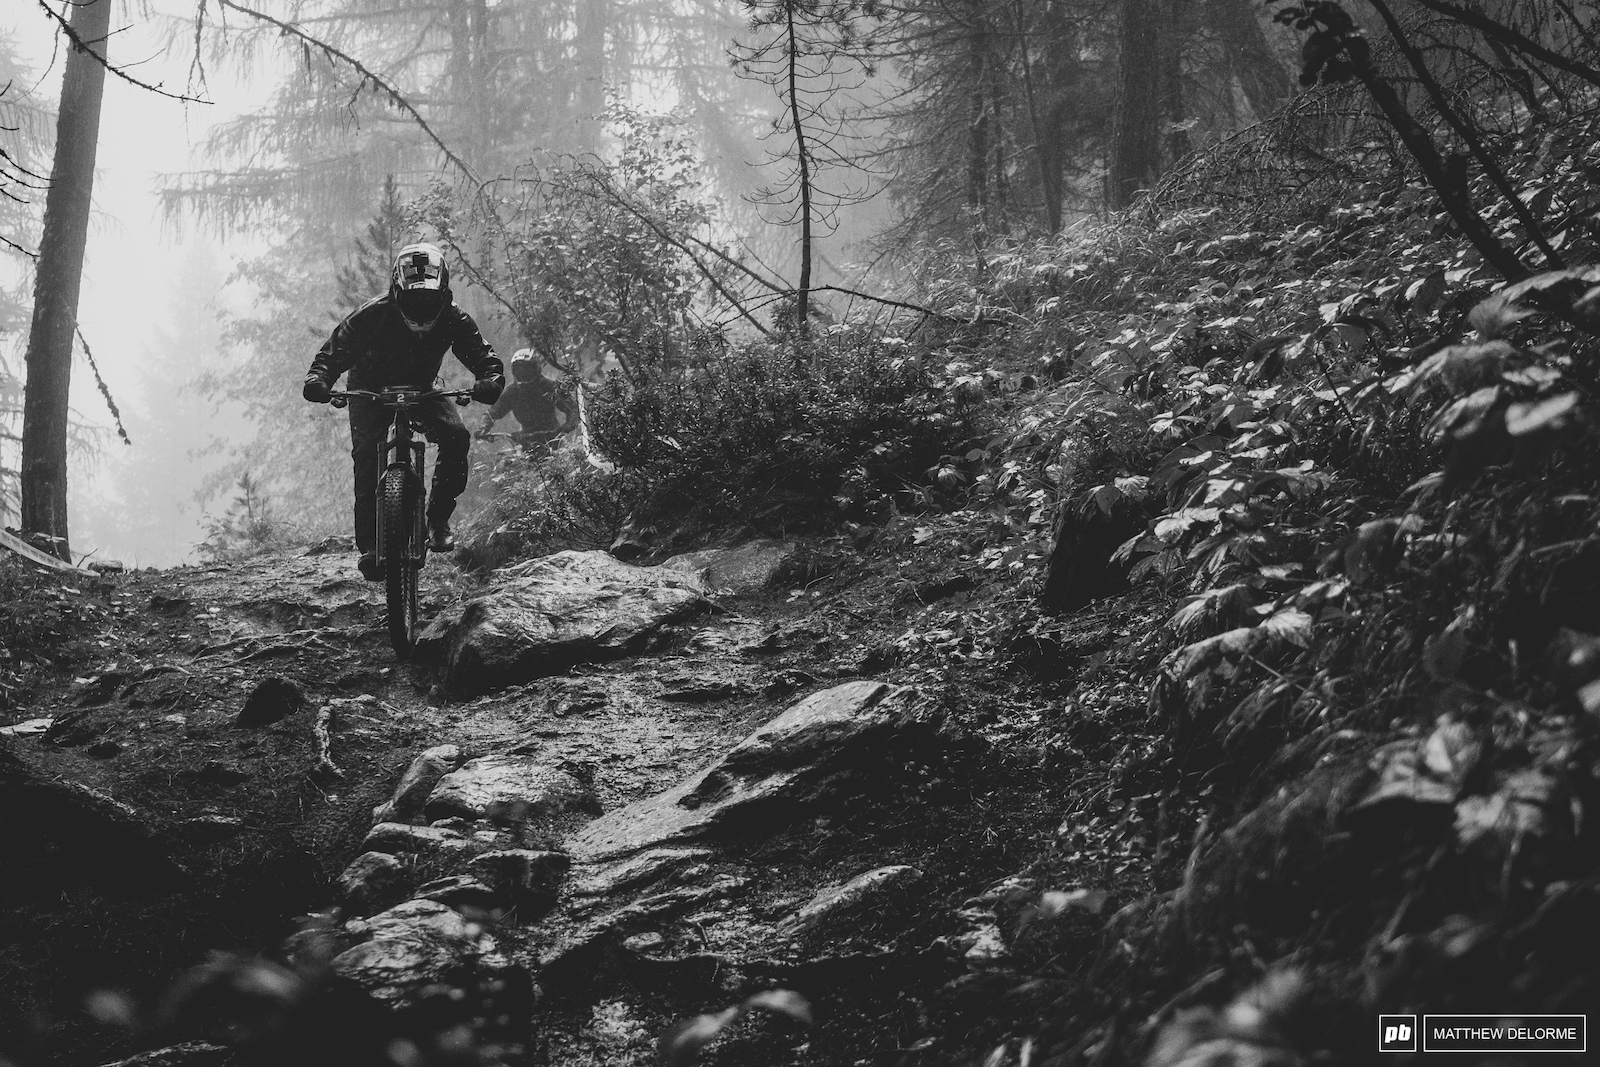 Florian Nicolai making his way through the roughness of the woods with ease.